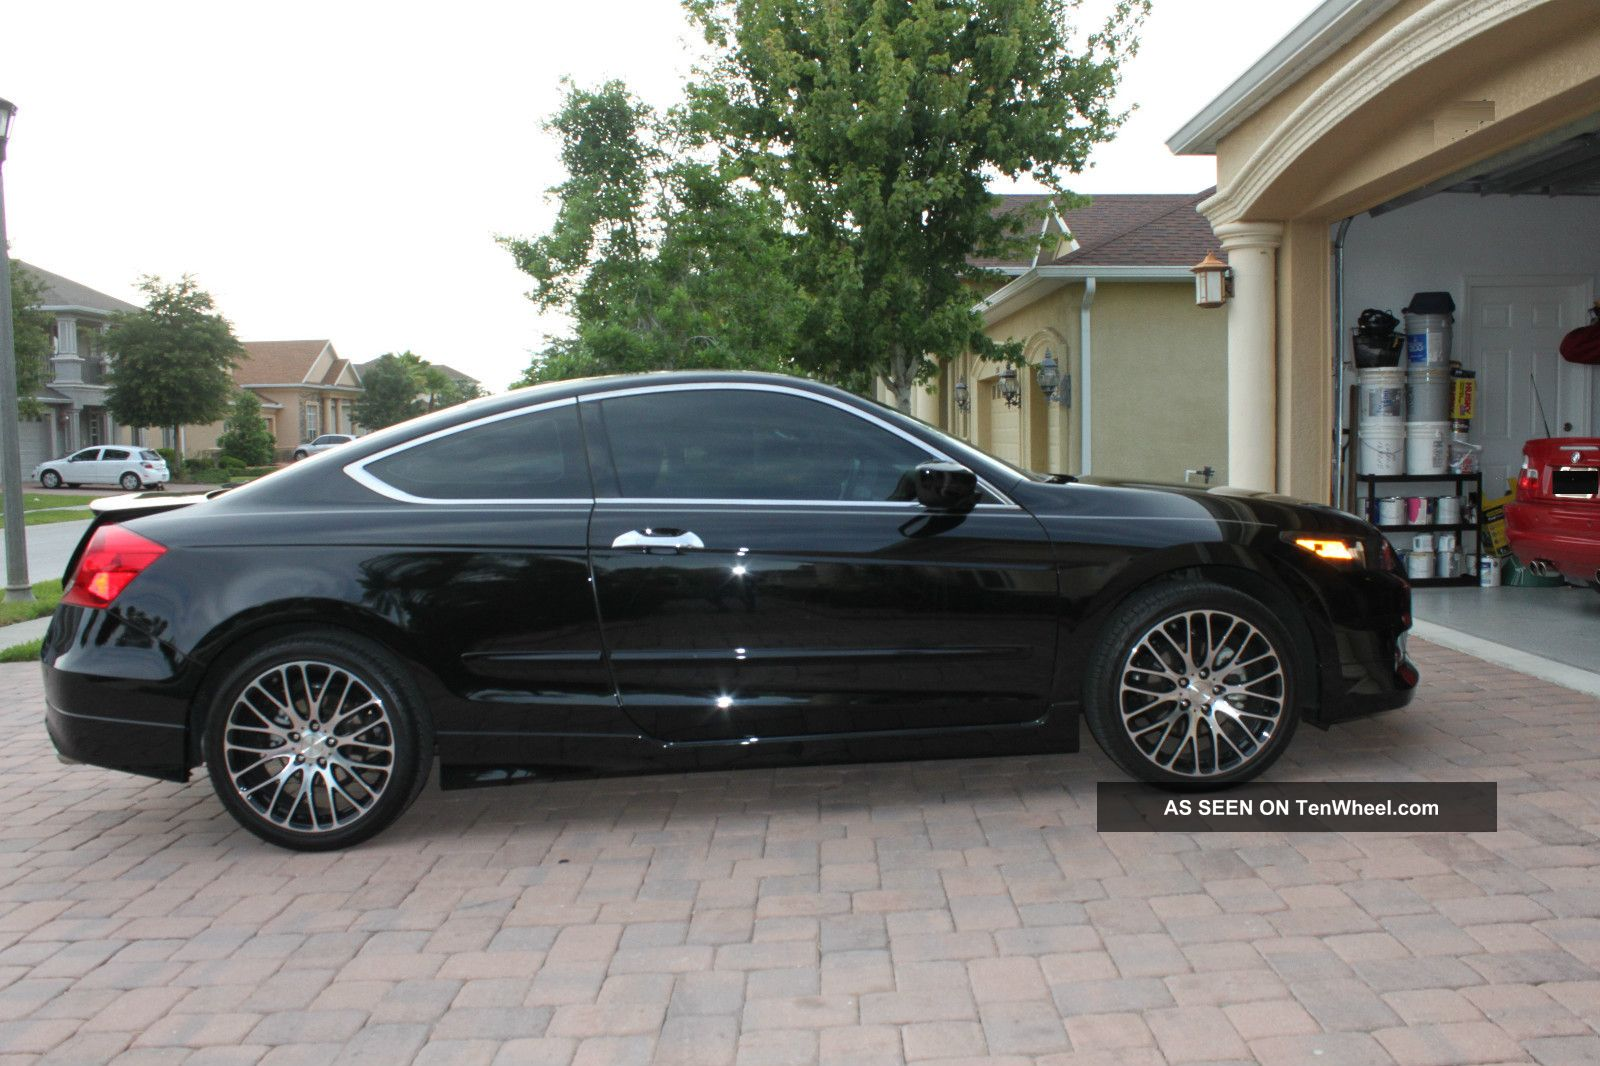 2012 honda accord ex l coupe 2 door 3 5l with hfp package. Black Bedroom Furniture Sets. Home Design Ideas